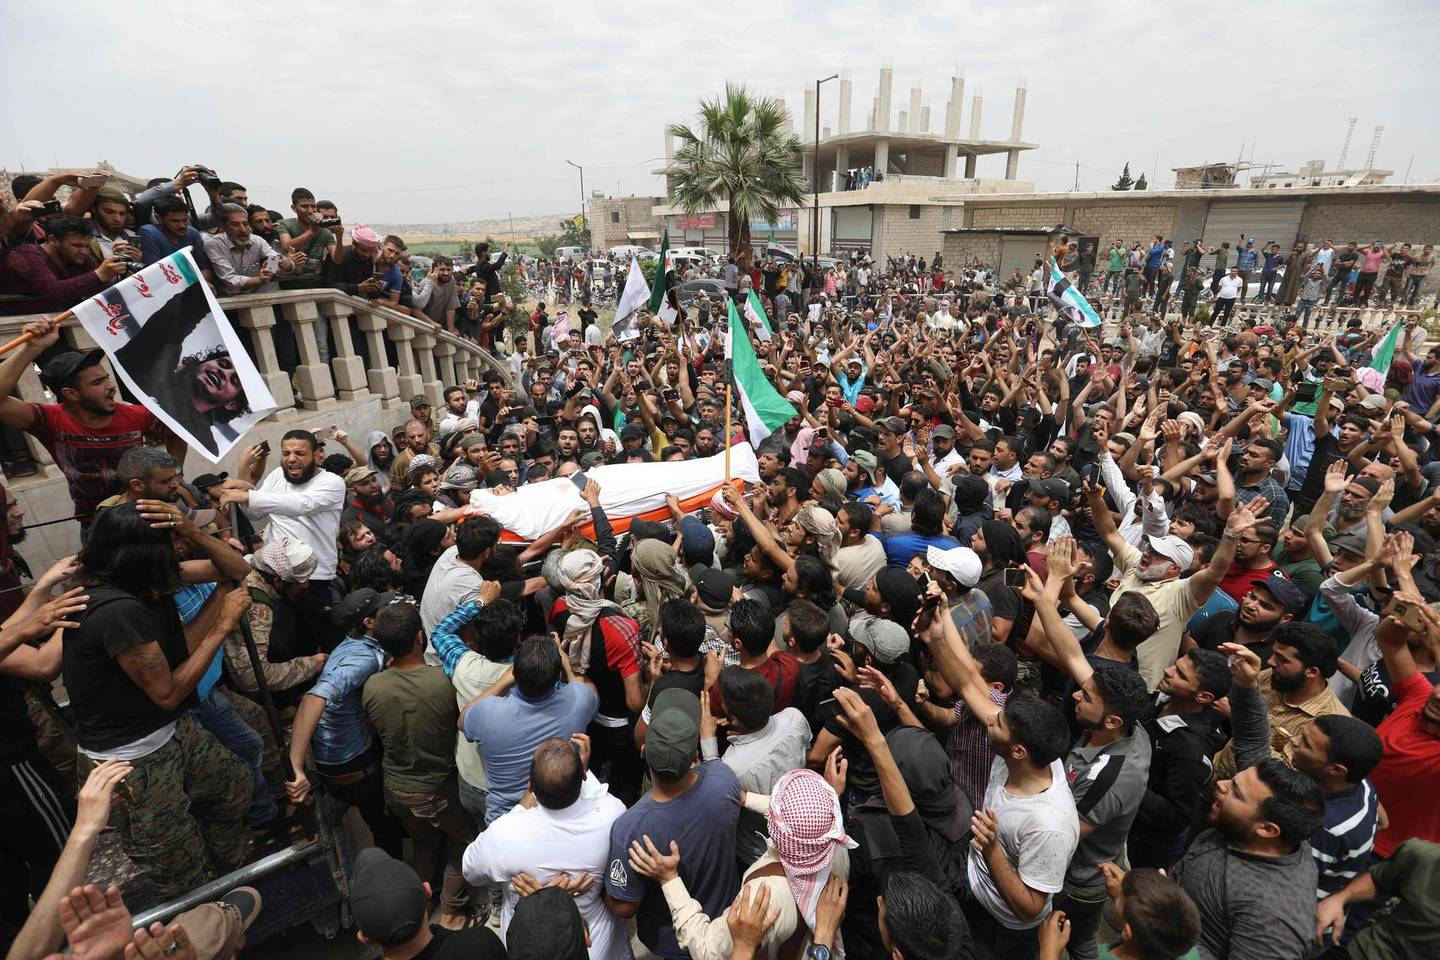 TOPSHOT - A picture taken on June 9, 2019 shows Syrians waving rebel flags and portraits of Abdel-Basset al-Sarout during the funeral of the late rebel fighter in al-Dana in Syria's jihadist-controlled Idlib region, near the border with Turkey. The Syrian goalkeeper turned rebel fighter who starred in an award-winning documentary died on June 8 of wounds sustained fighting regime forces in northwestern Syria, his faction said. Sarout, 27, was among dozens of fighters killed since June 6 in clashes with regime forces on the edges of the Idlib region. / AFP / OMAR HAJ KADOUR